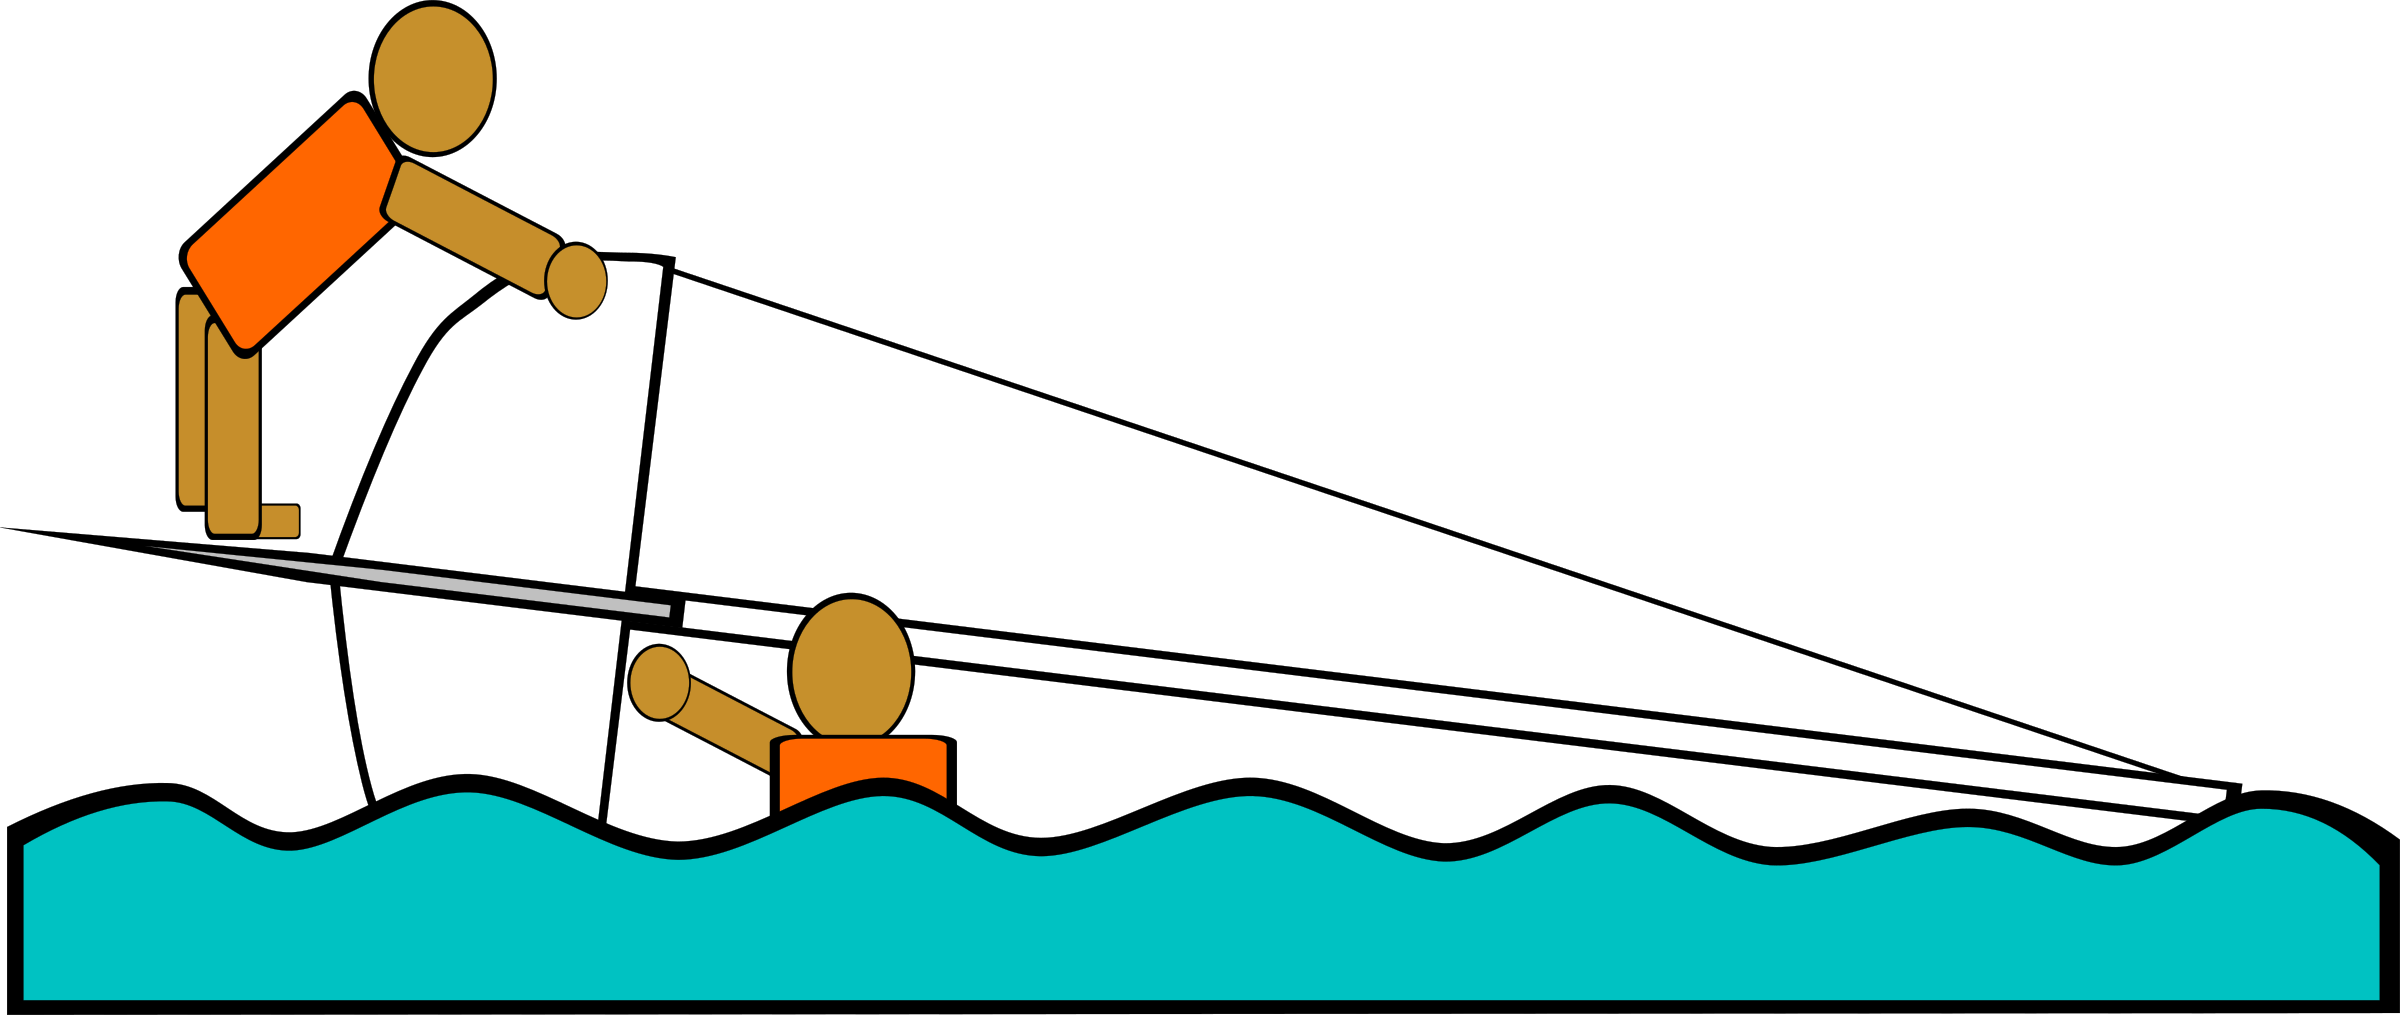 Sailing Capsized Rescue Illustrations by Gerald_G